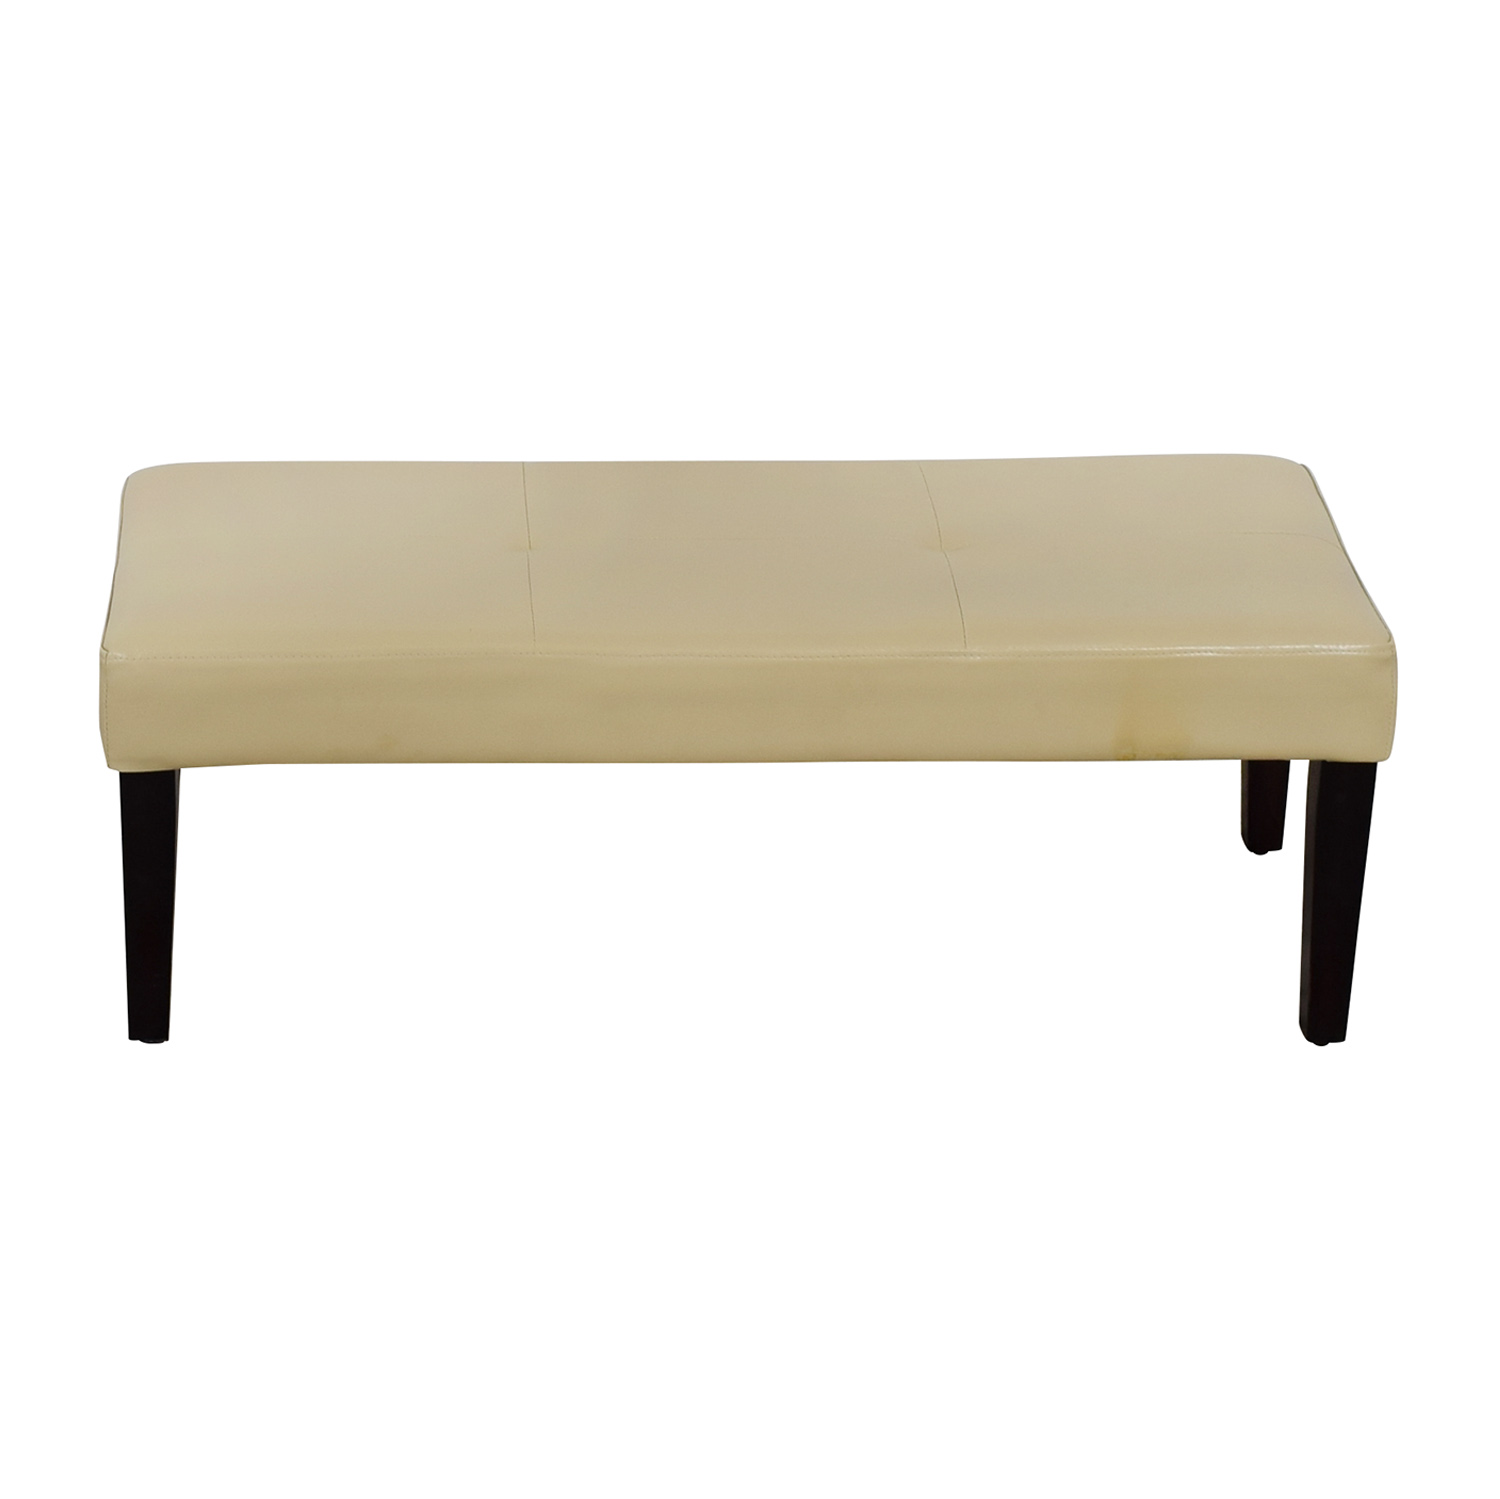 shop Overstock Overstock Taupe Bench online